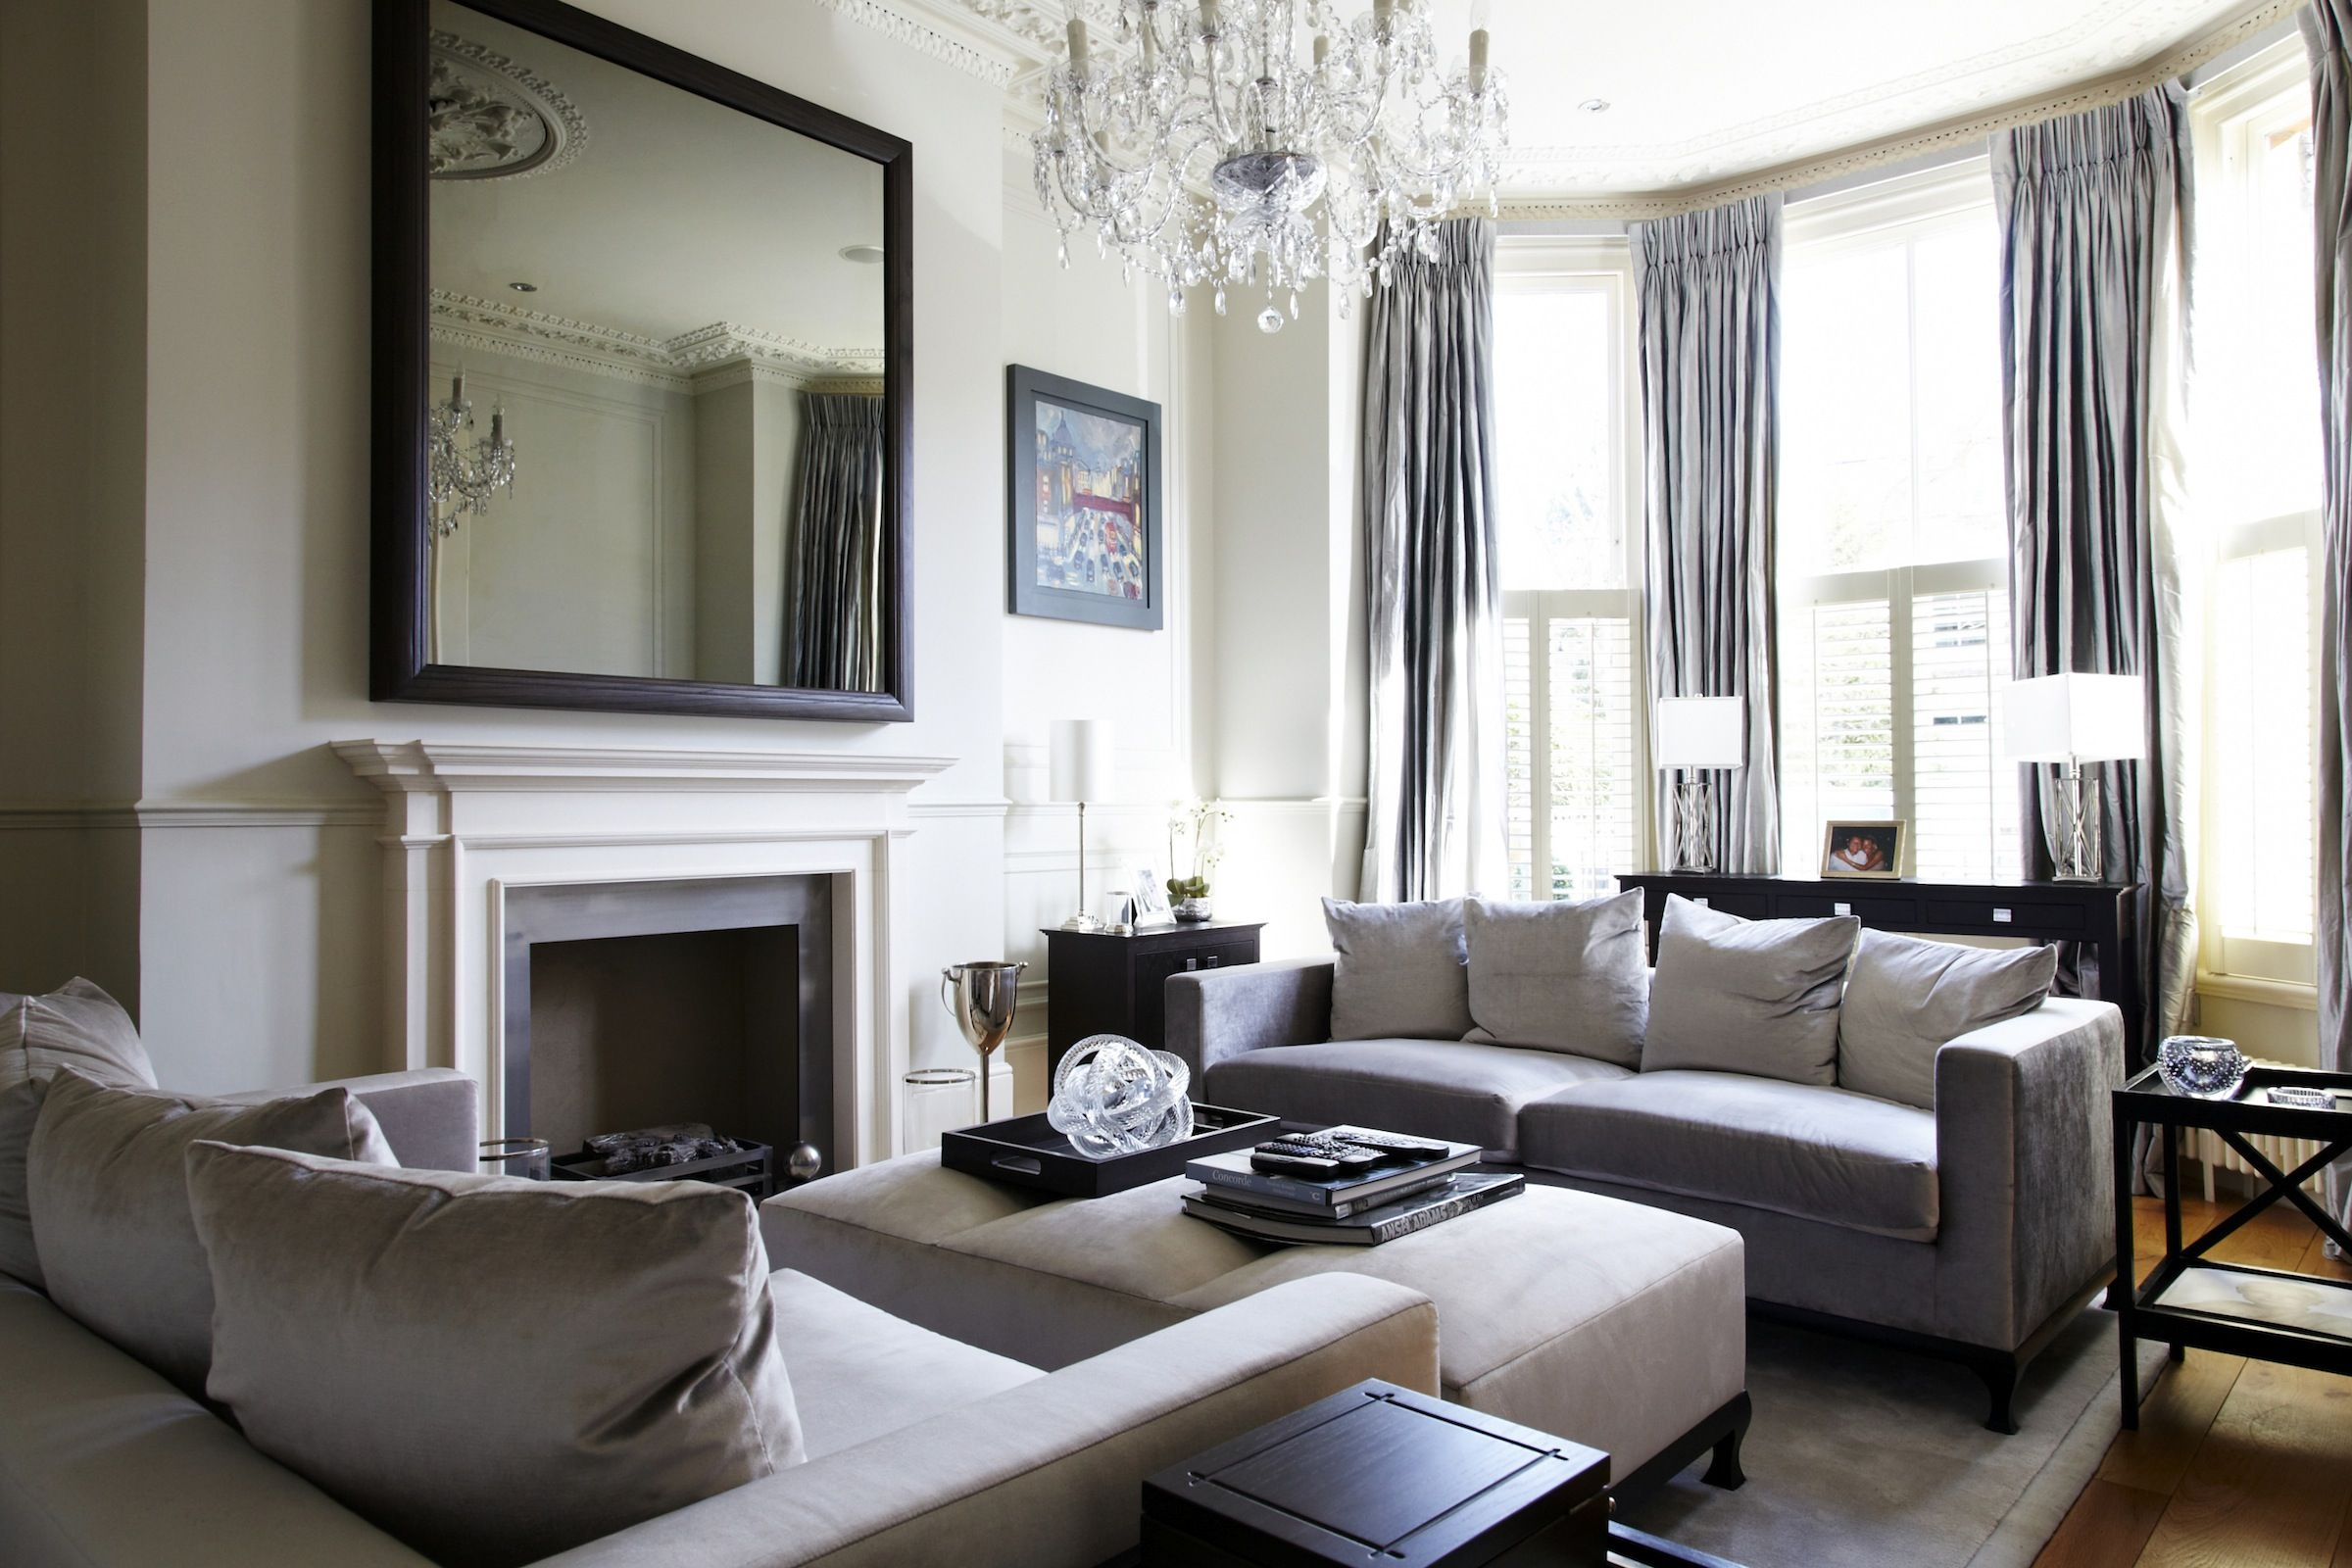 Victorian Chic House With A Modern Twist  Decoholic  Living room